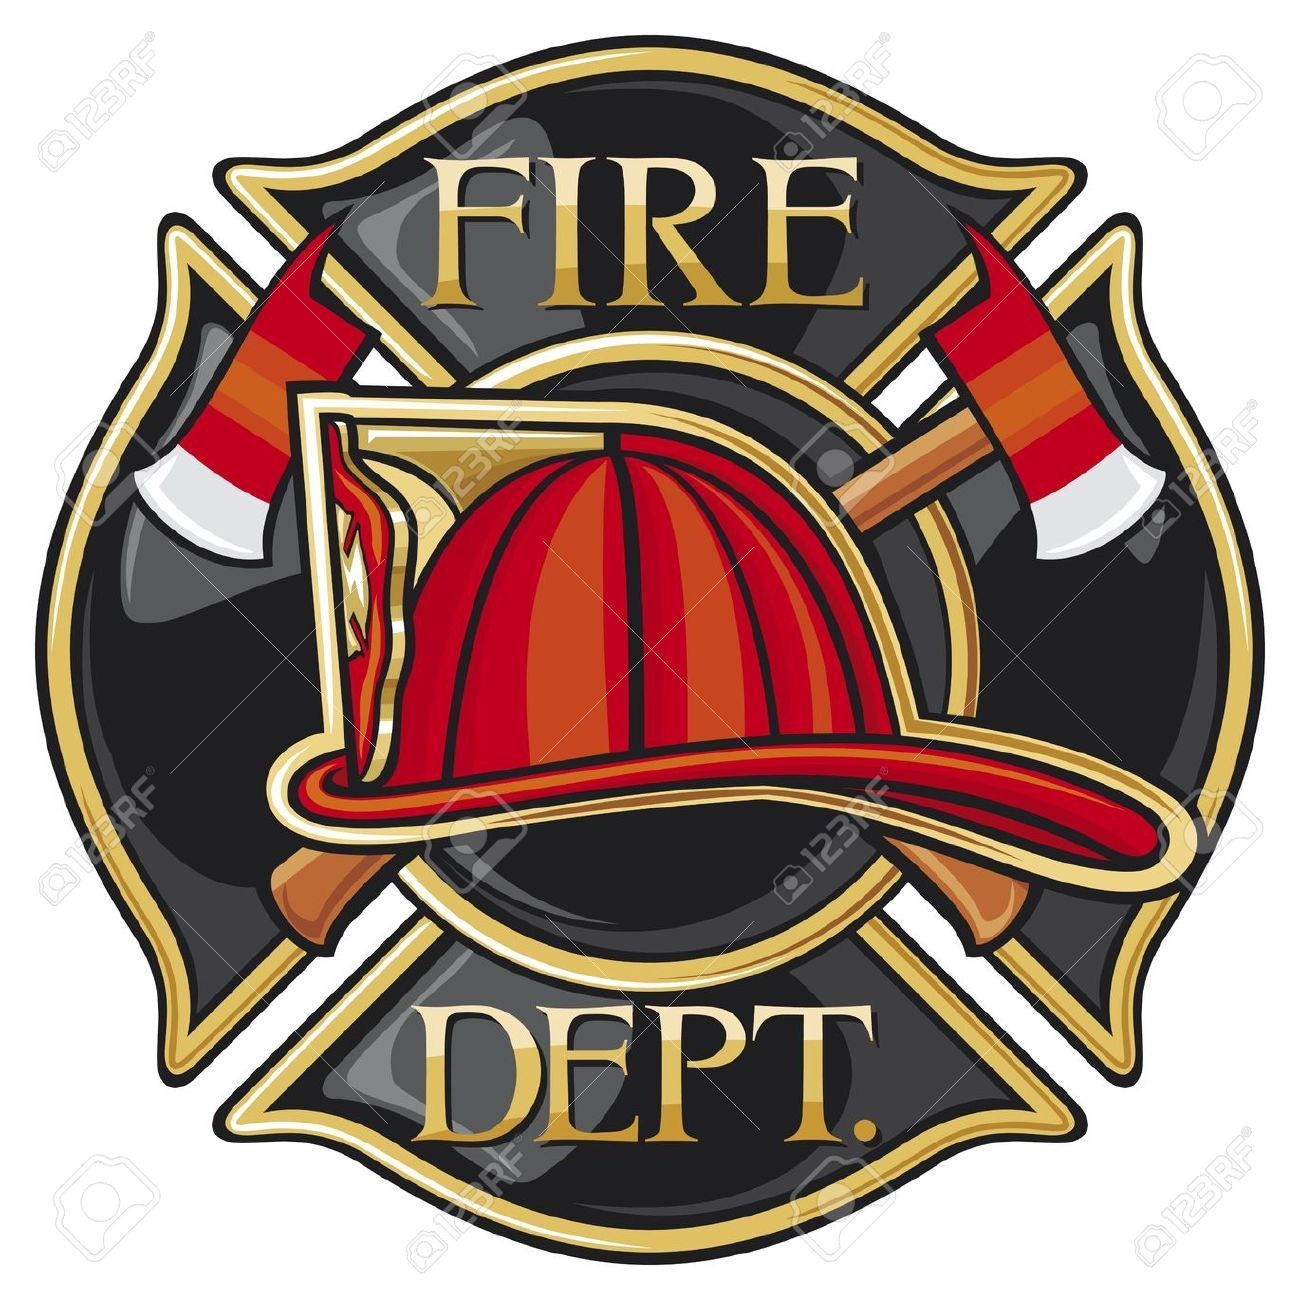 Department Images Stock Pictures Royalty Free Department Photos And Stock Photography Firefighter Fire Dept Fire Department